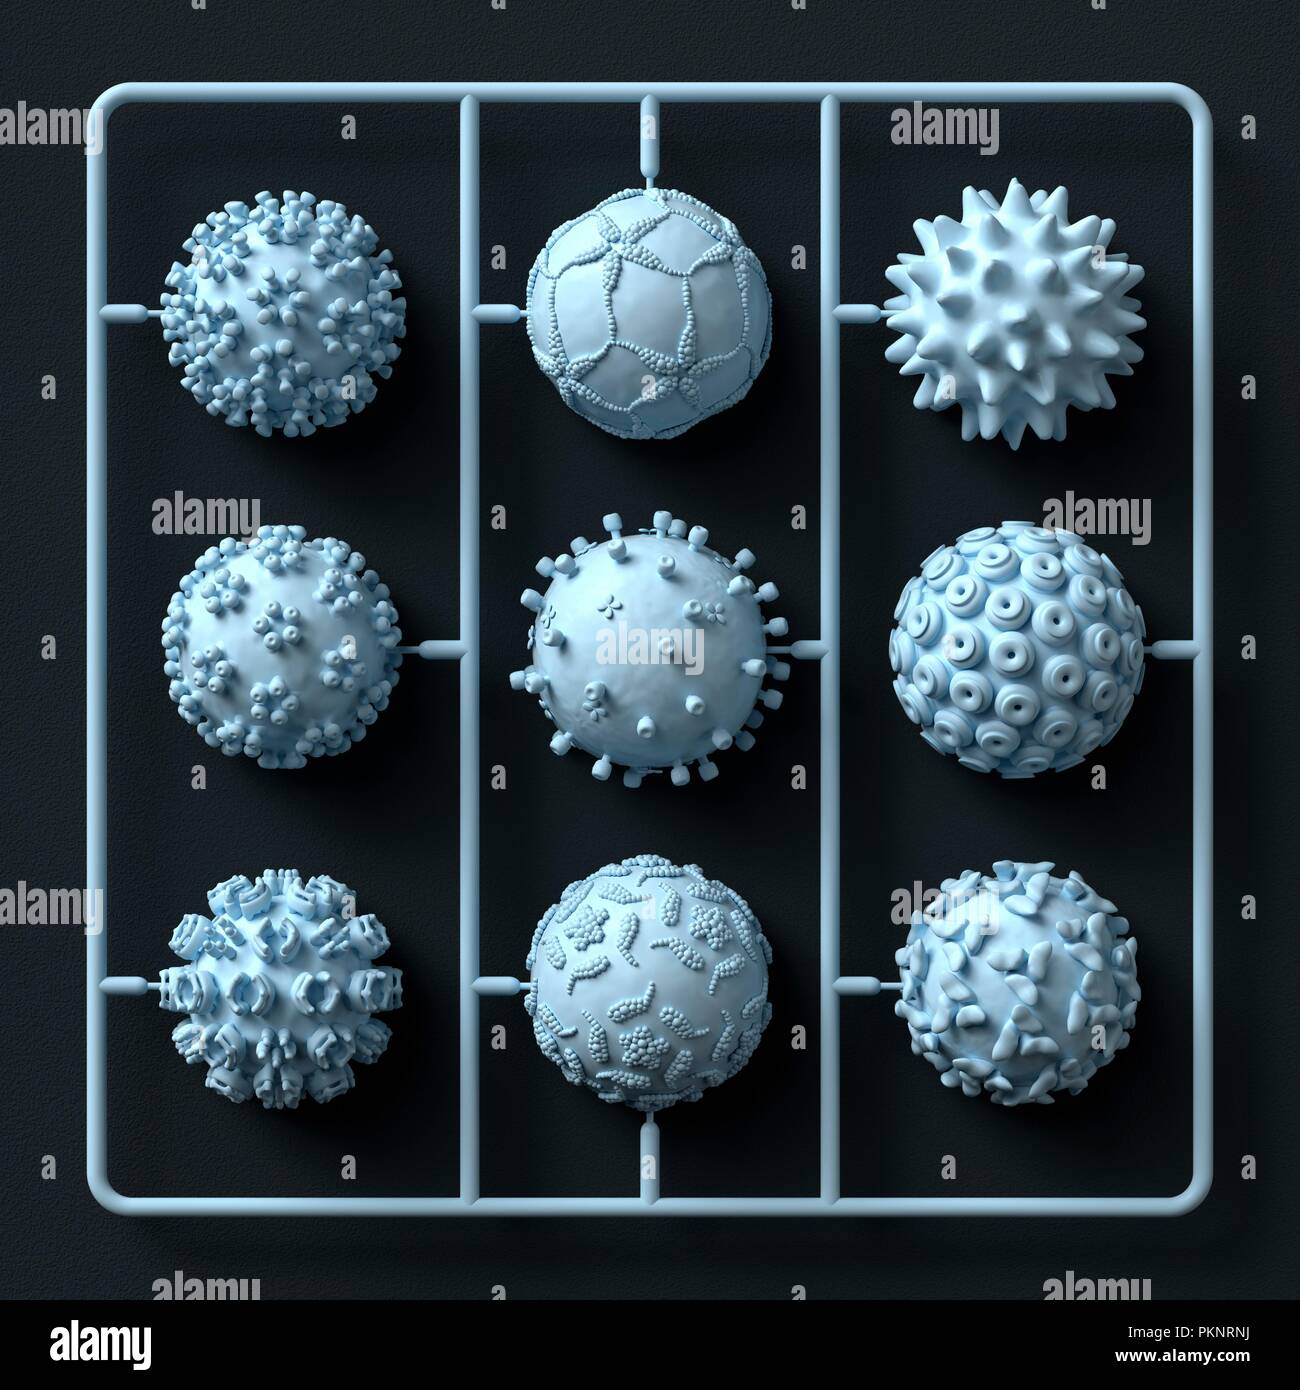 Model virus kit, illustration. - Stock Image